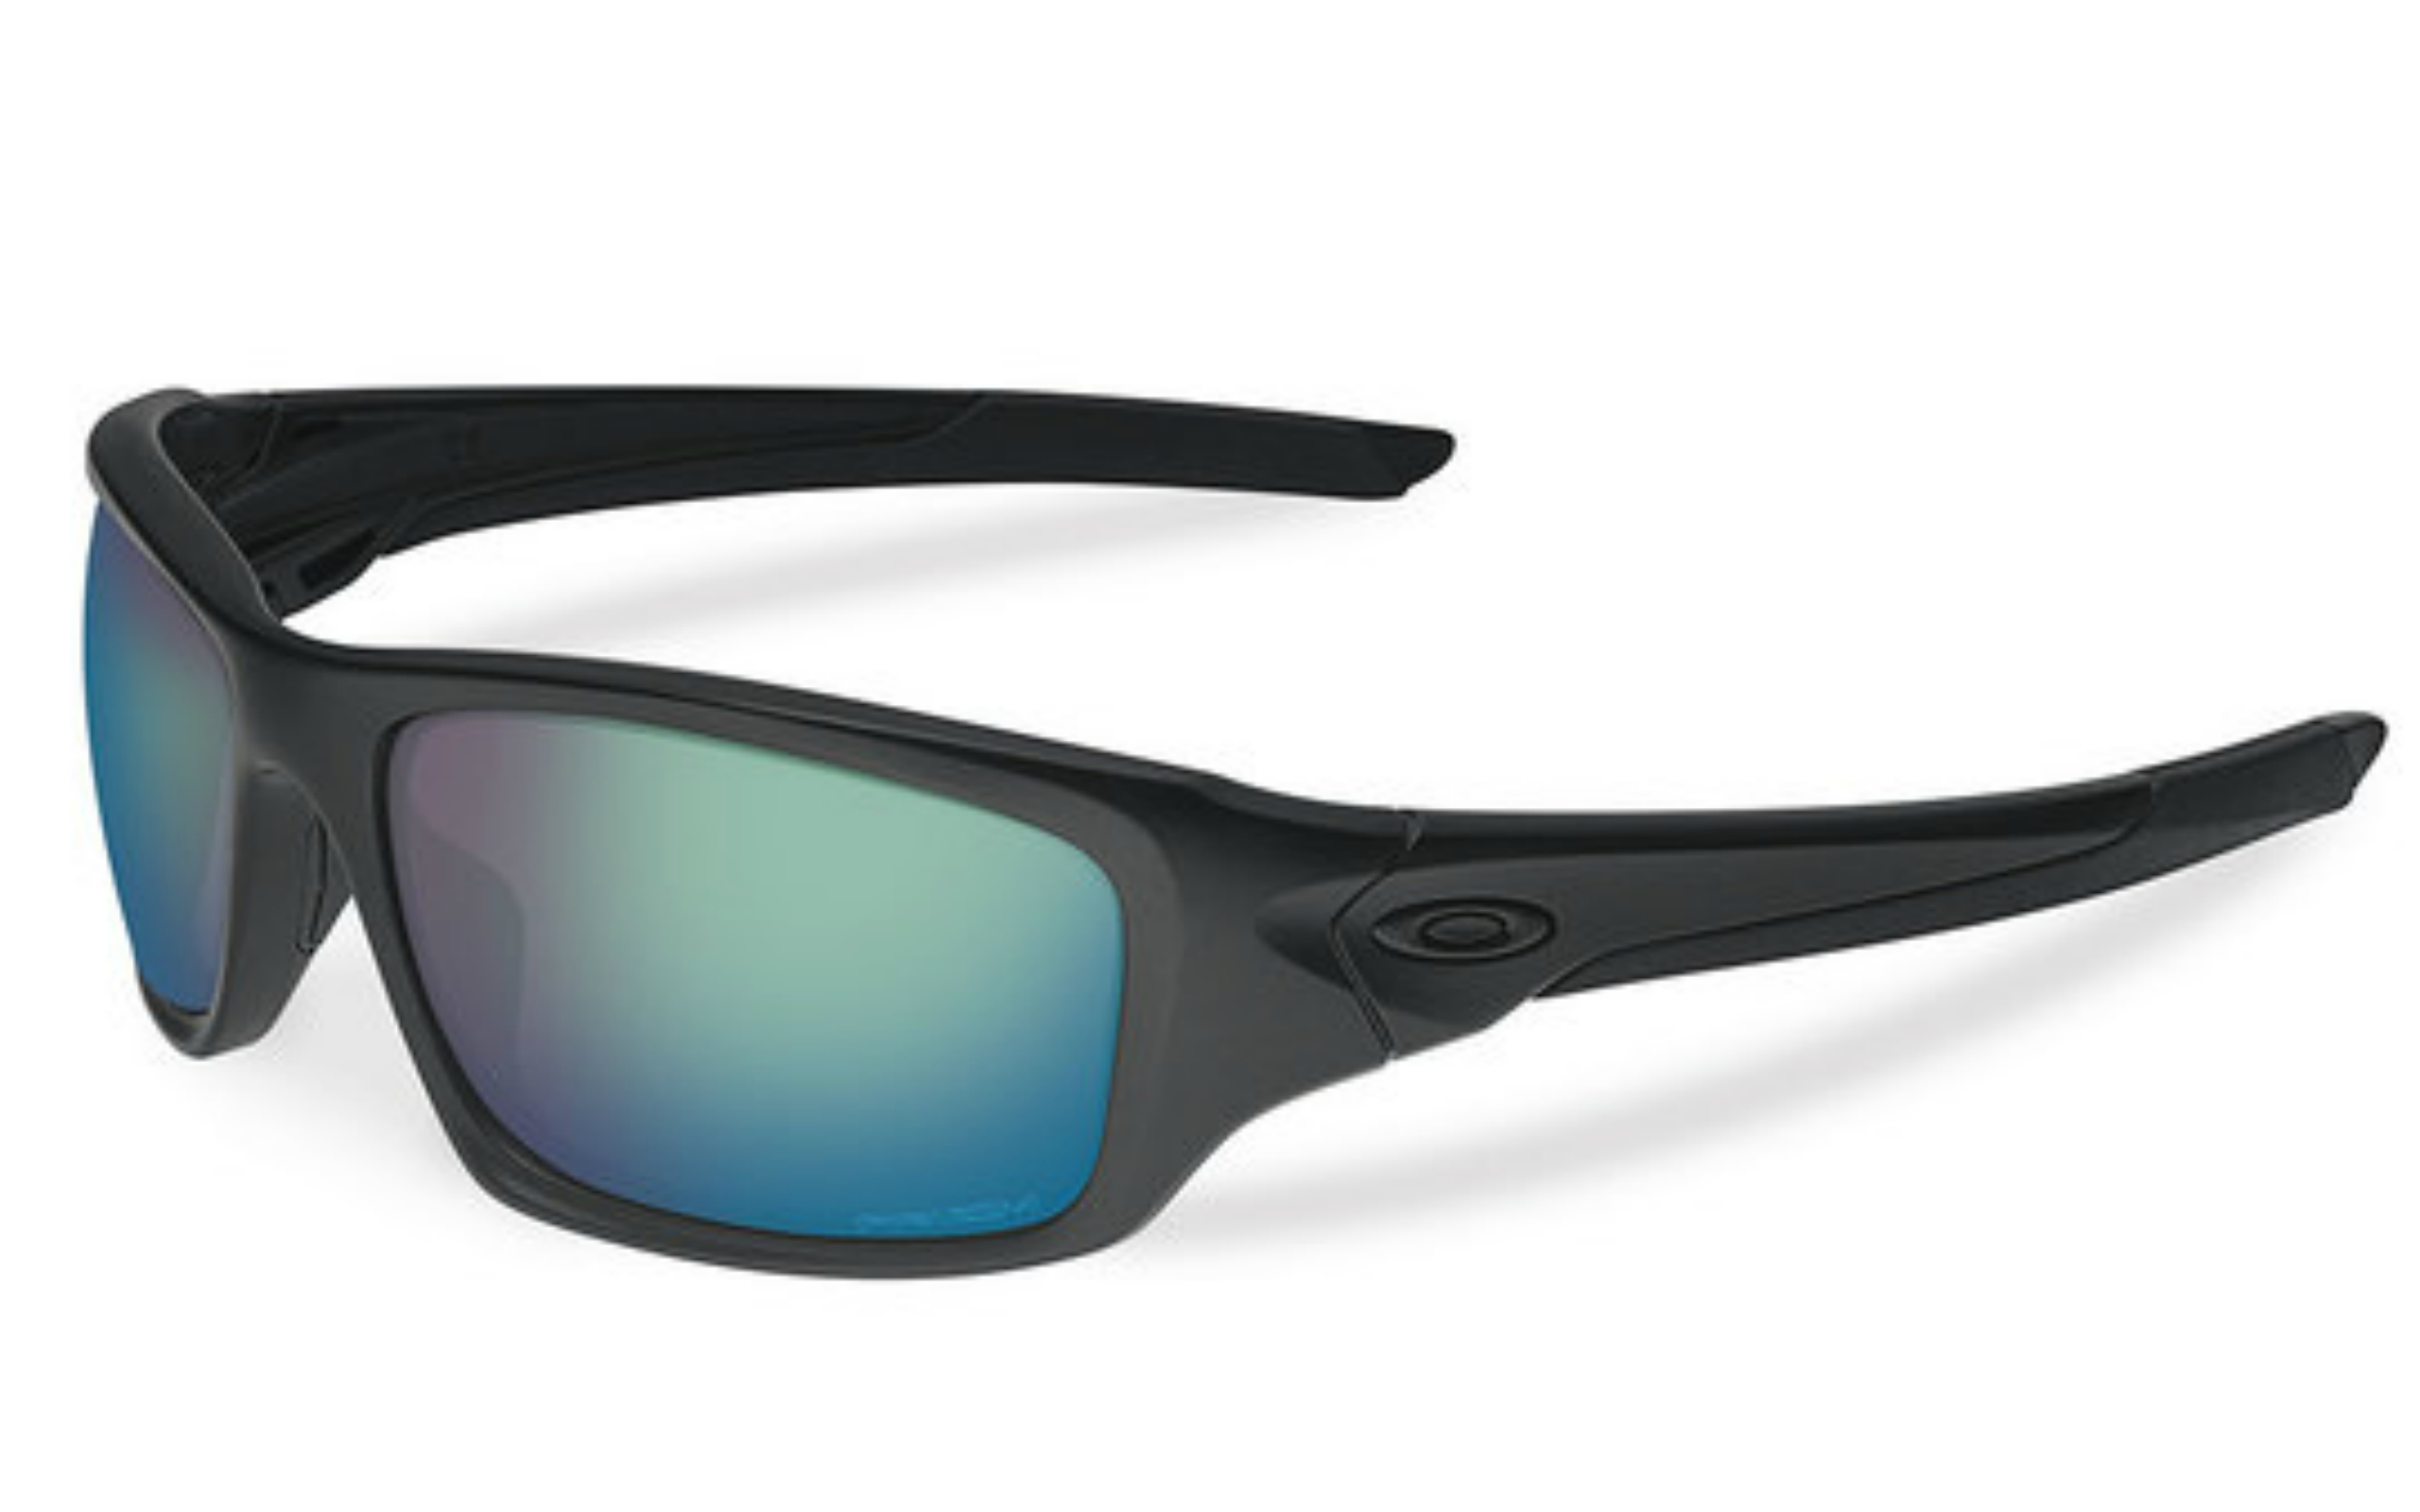 89a7d88454 Oakley SI Launches New PRIZM Maritime for Everyday Wear